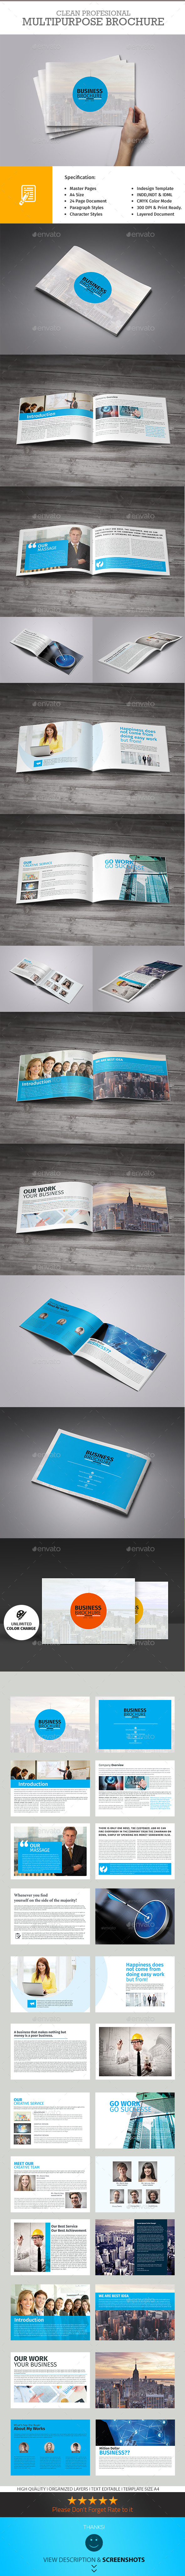 Business Plan - 24 Pages Business Brochure - Corporate Brochures